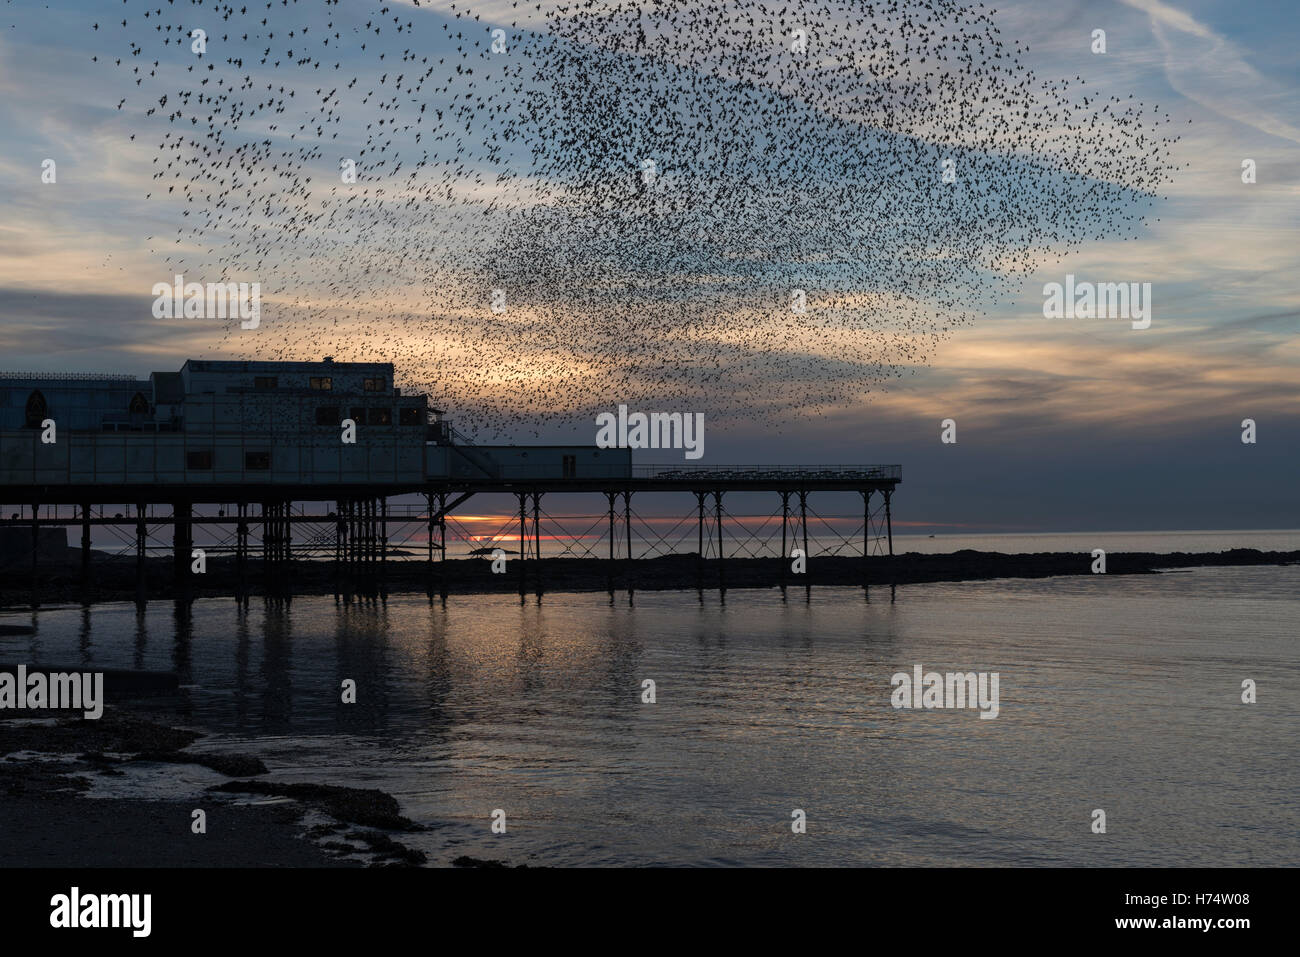 A murmuration of starlings flock over Aberystwyth's Victorian Pier dating back to 1865. - Stock Image